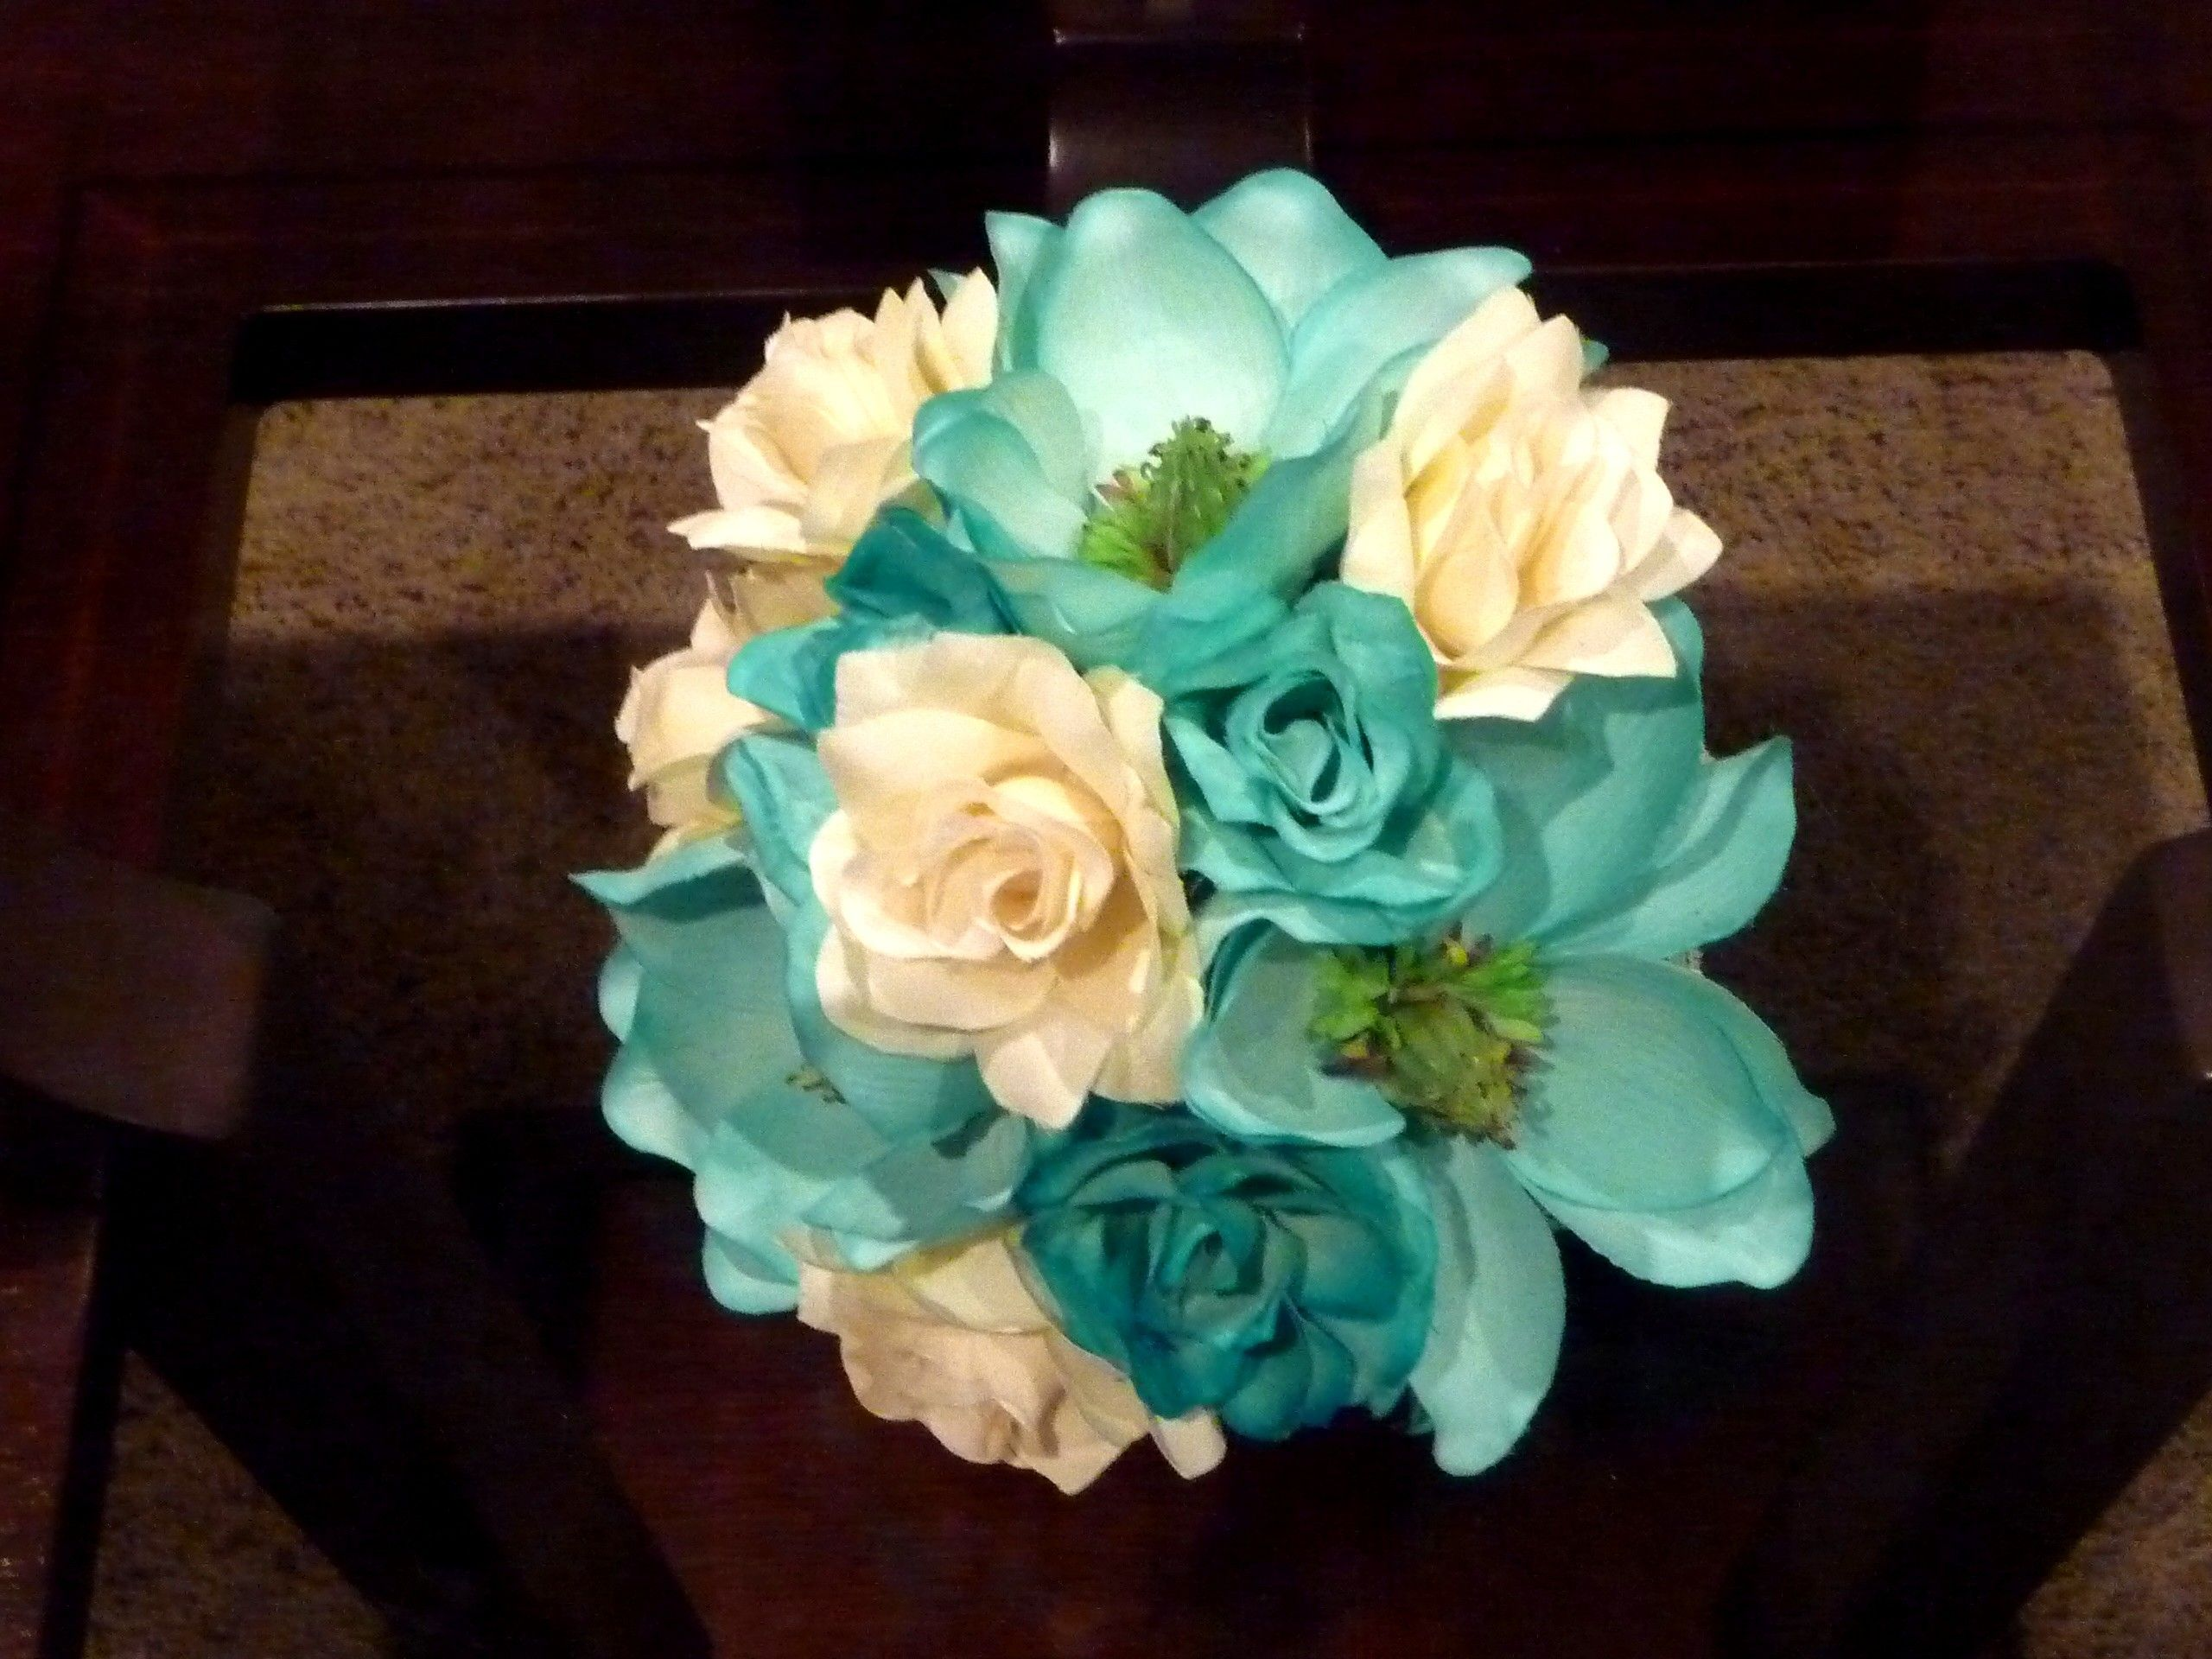 Teal Turquoise Magnolias Transformed Into A Fabulous Silk Bridal Bouquet With Ivory And Roses